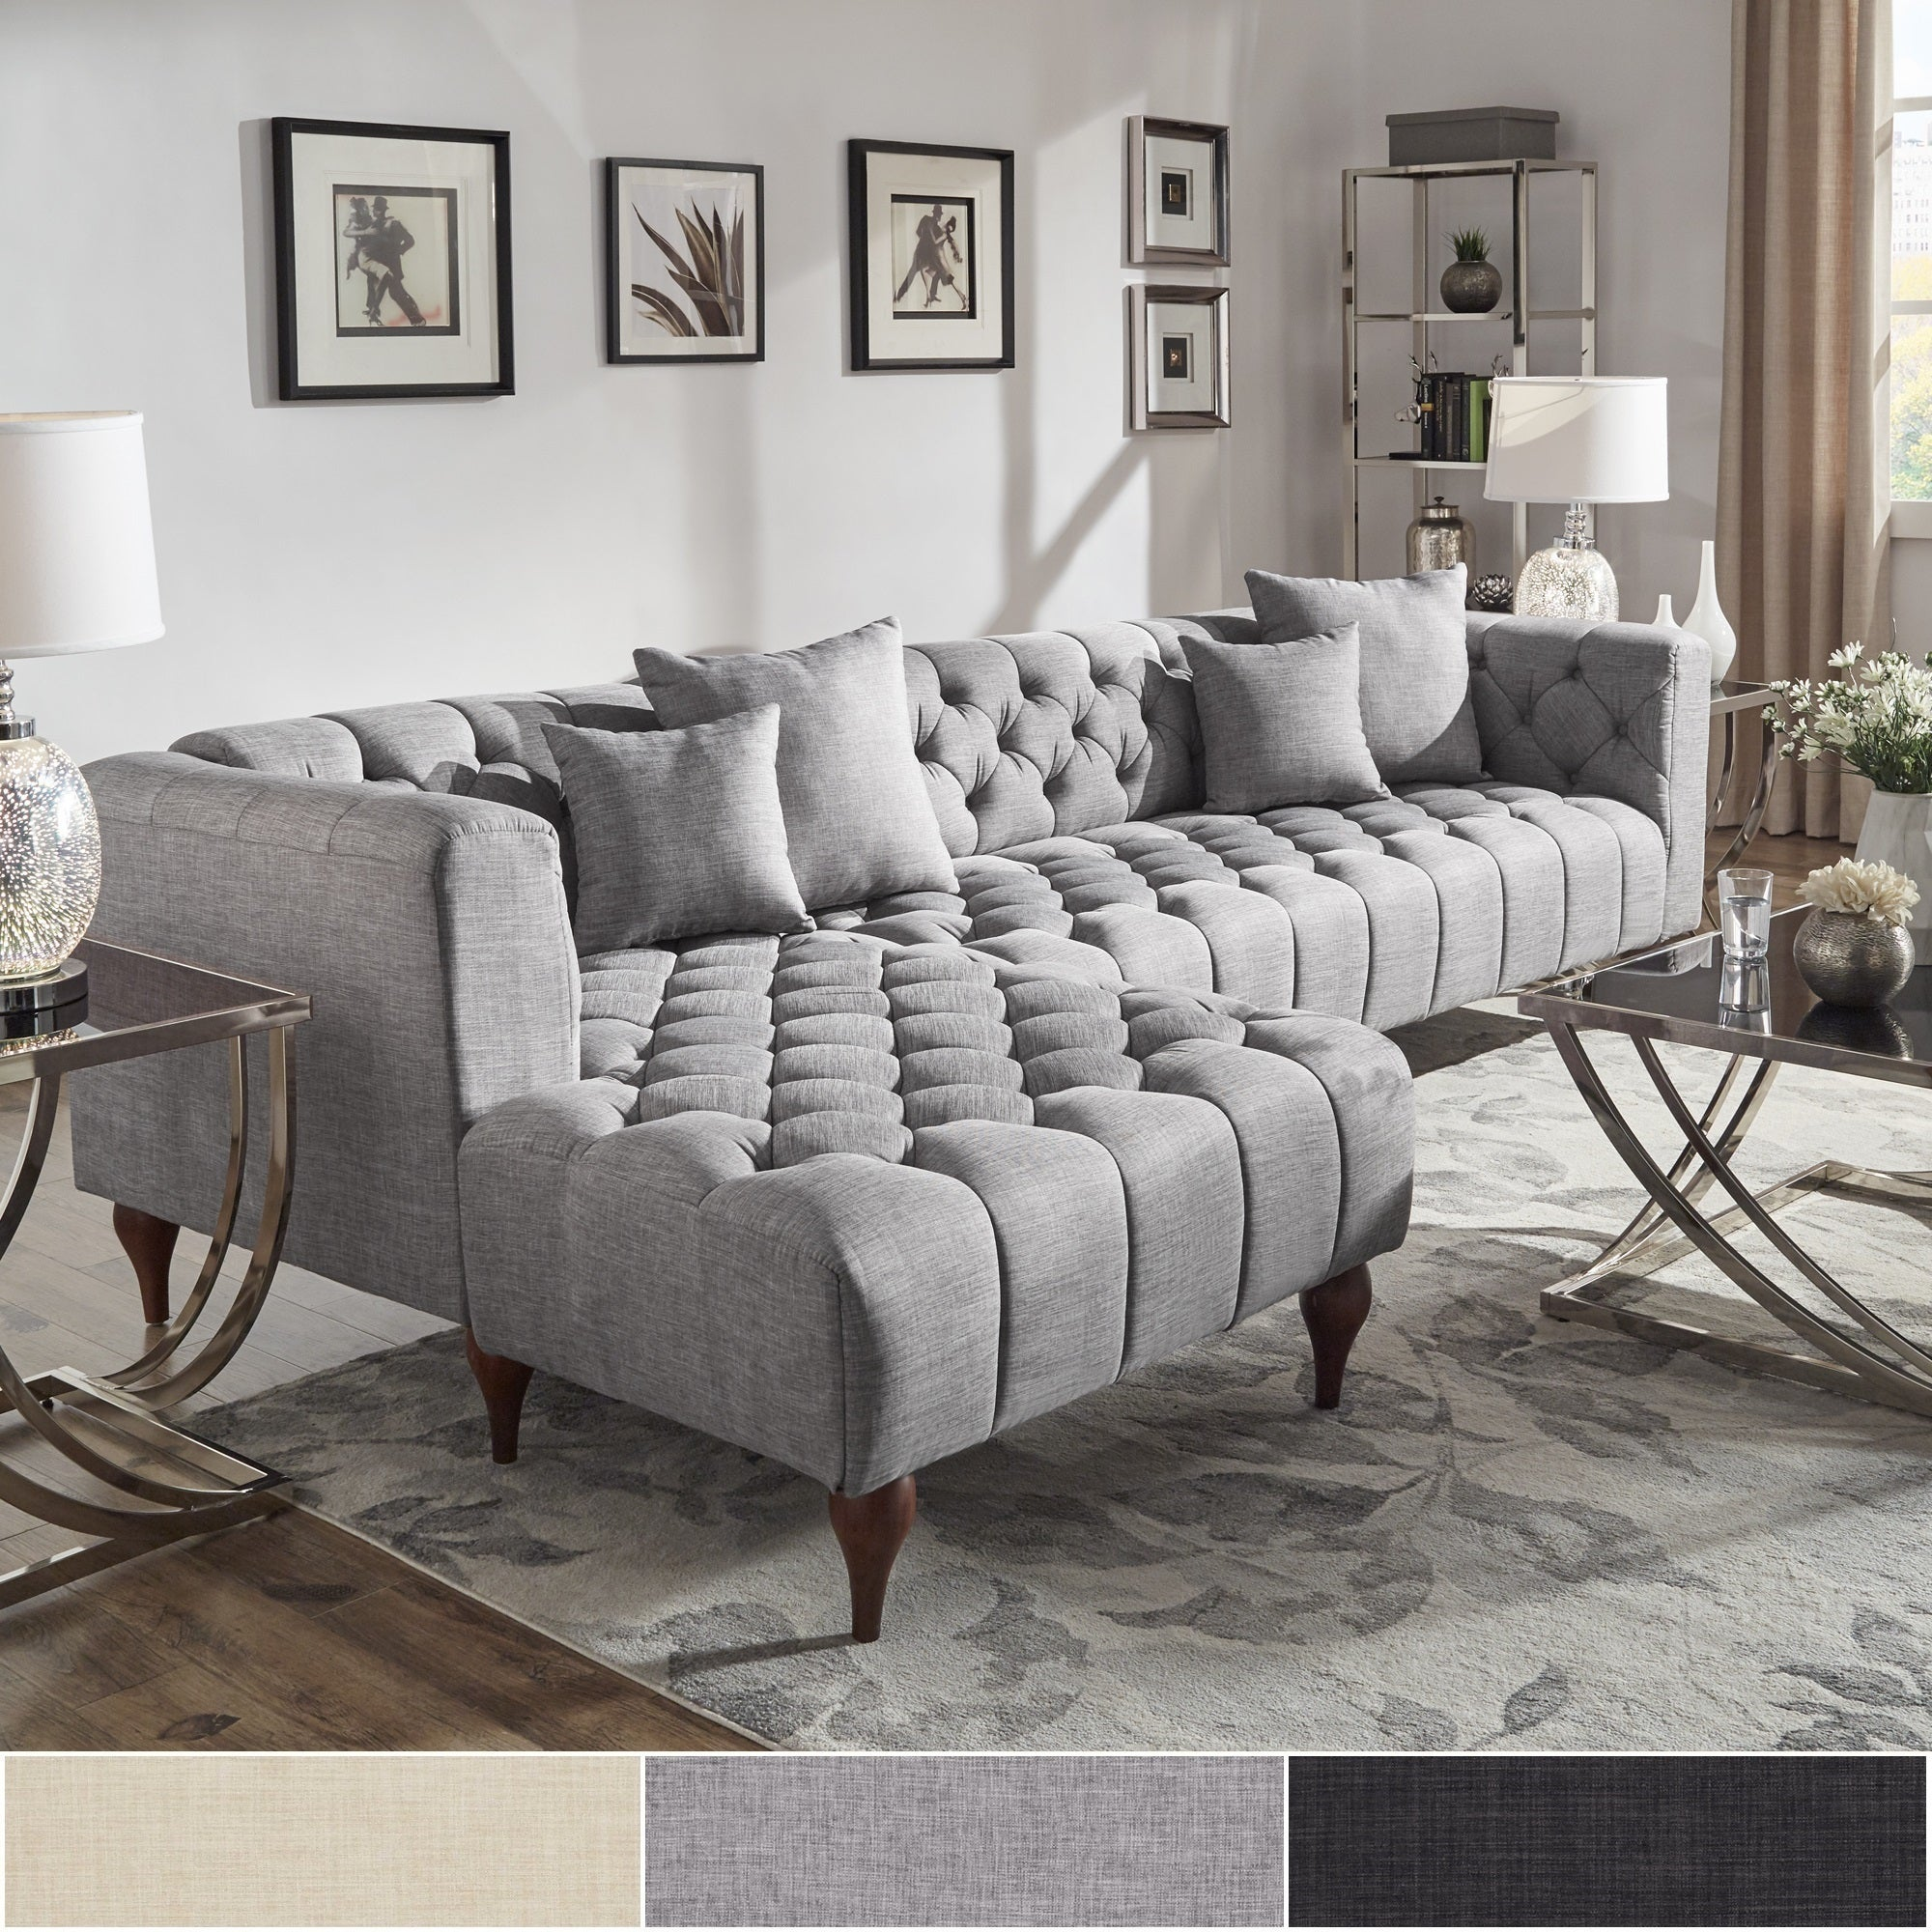 Danise tufted linen upholstered tuxedo arm 4 seat sofa and chaise by inspire q artisan